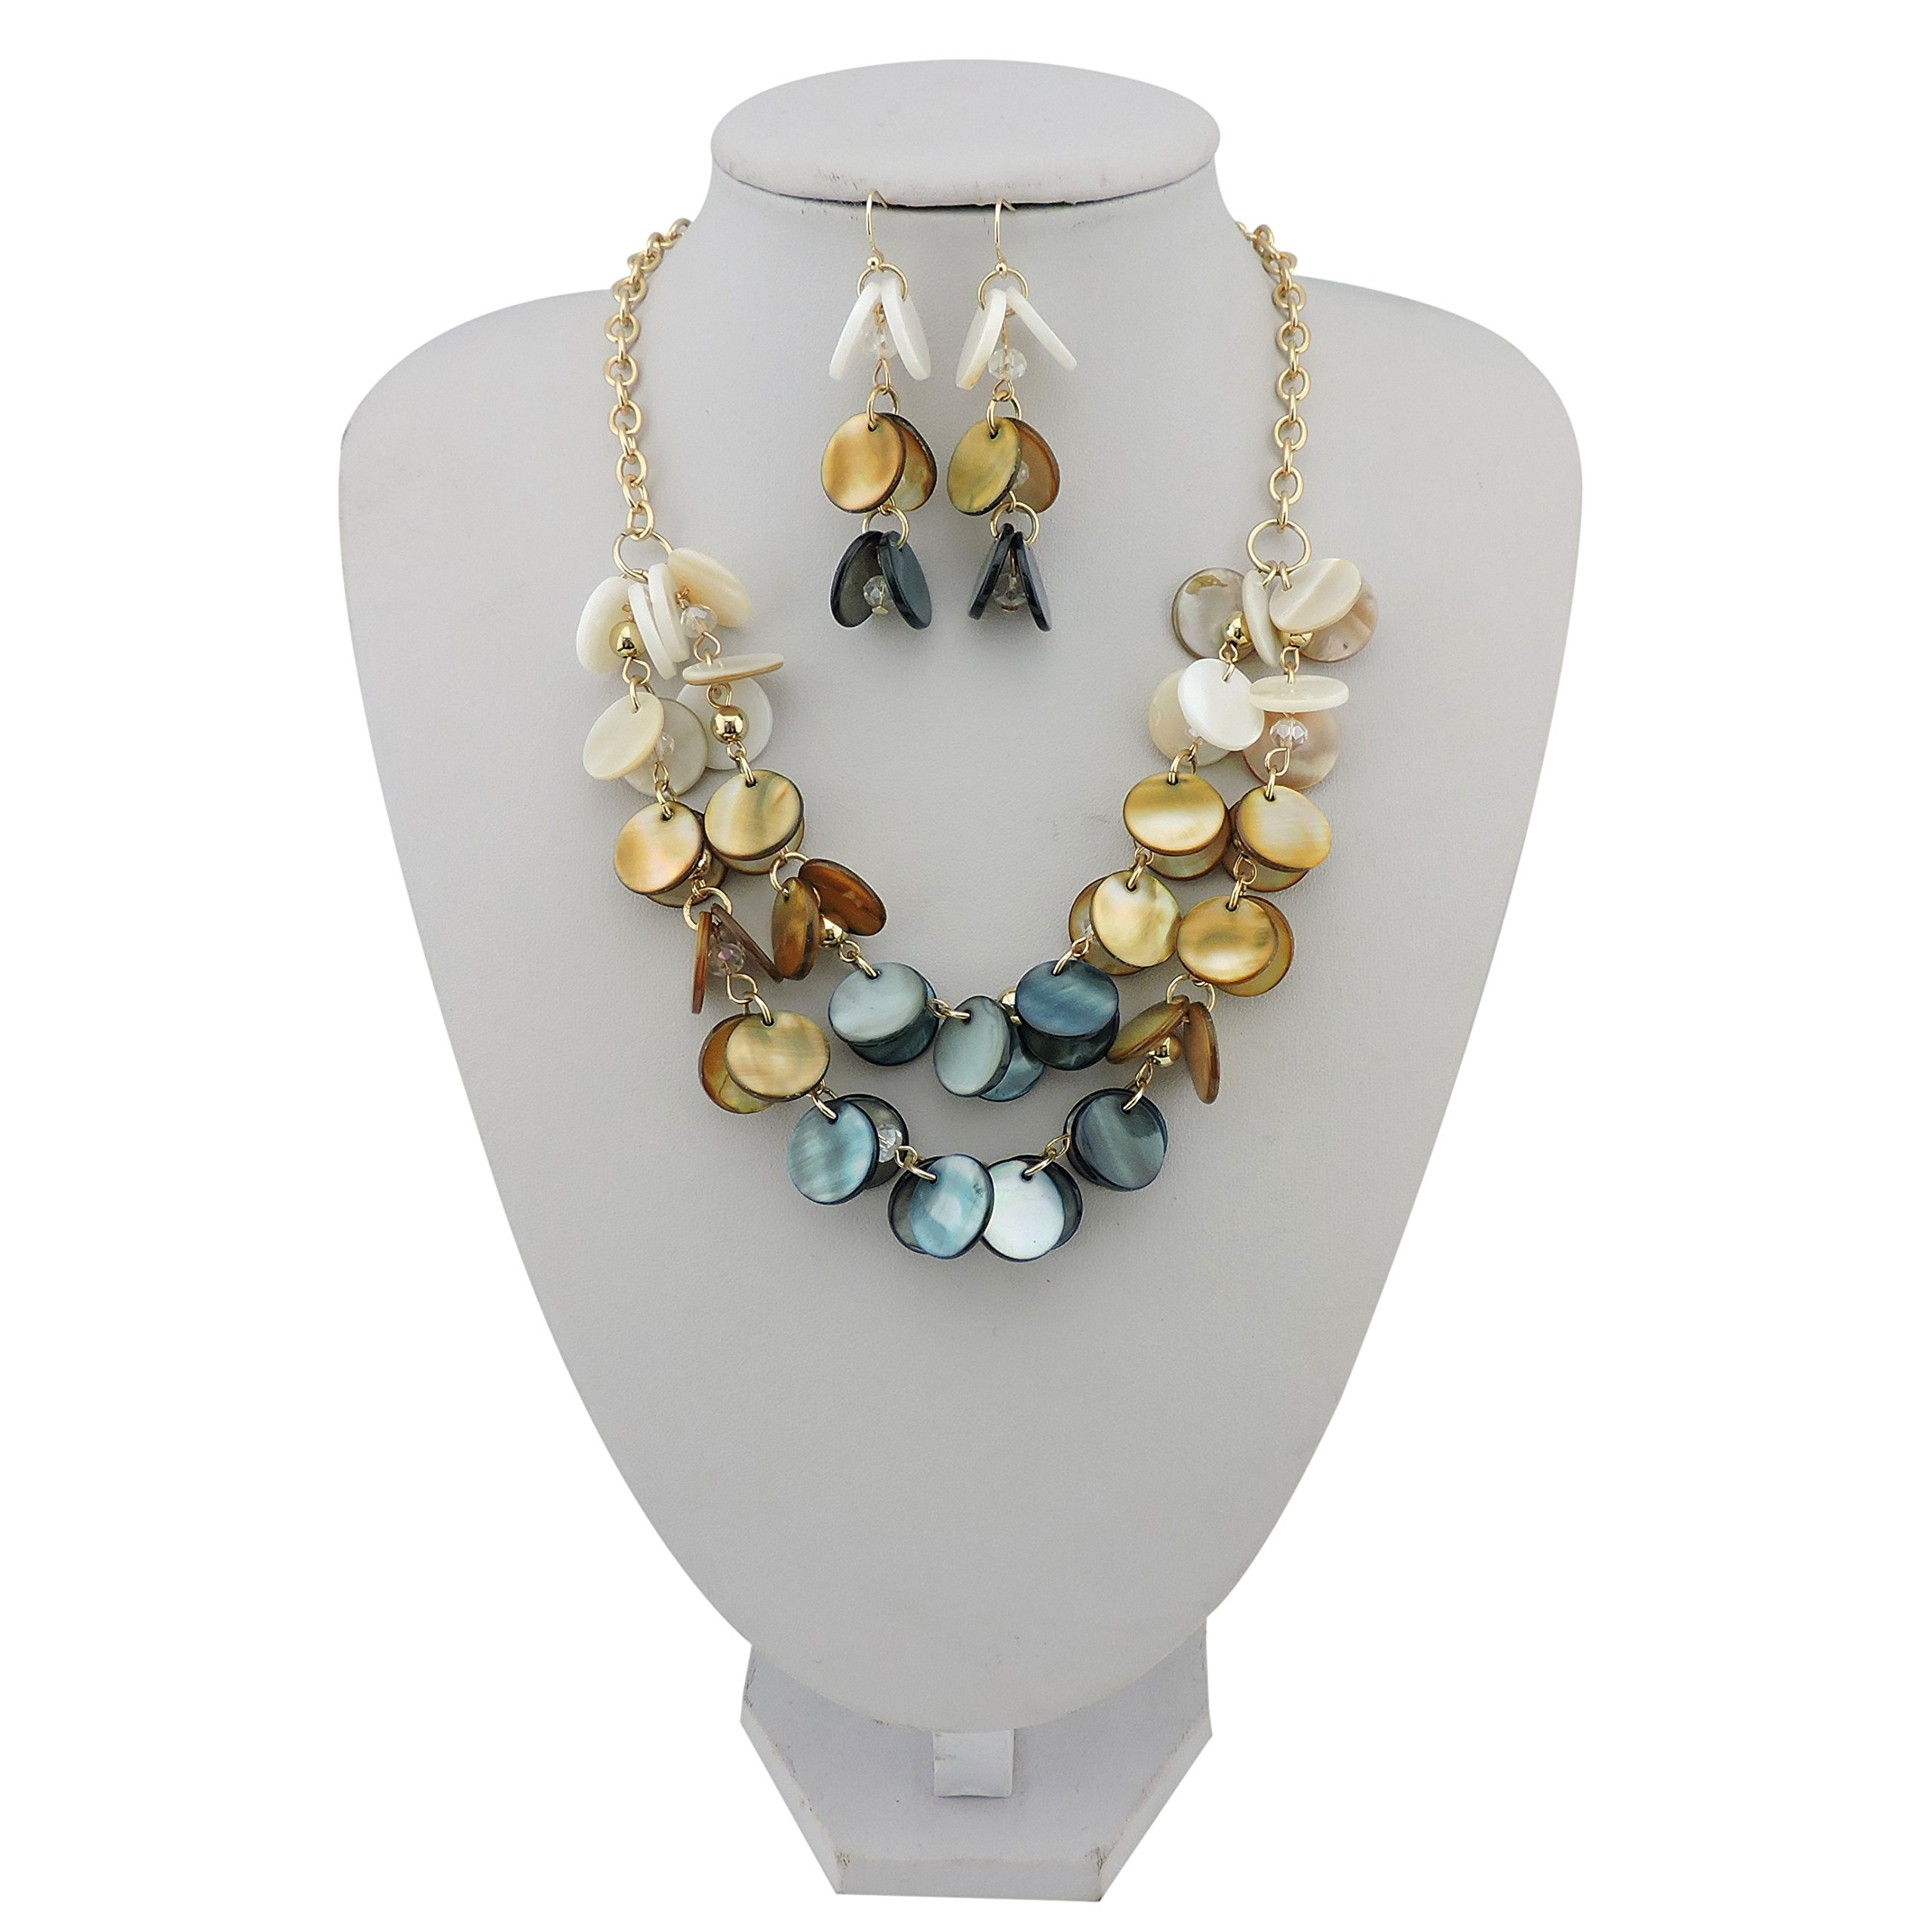 Bocar 2 Layer Statement Choker Shell Necklace and Earring Set for Women Gift (NK-10248-cream+niagara)